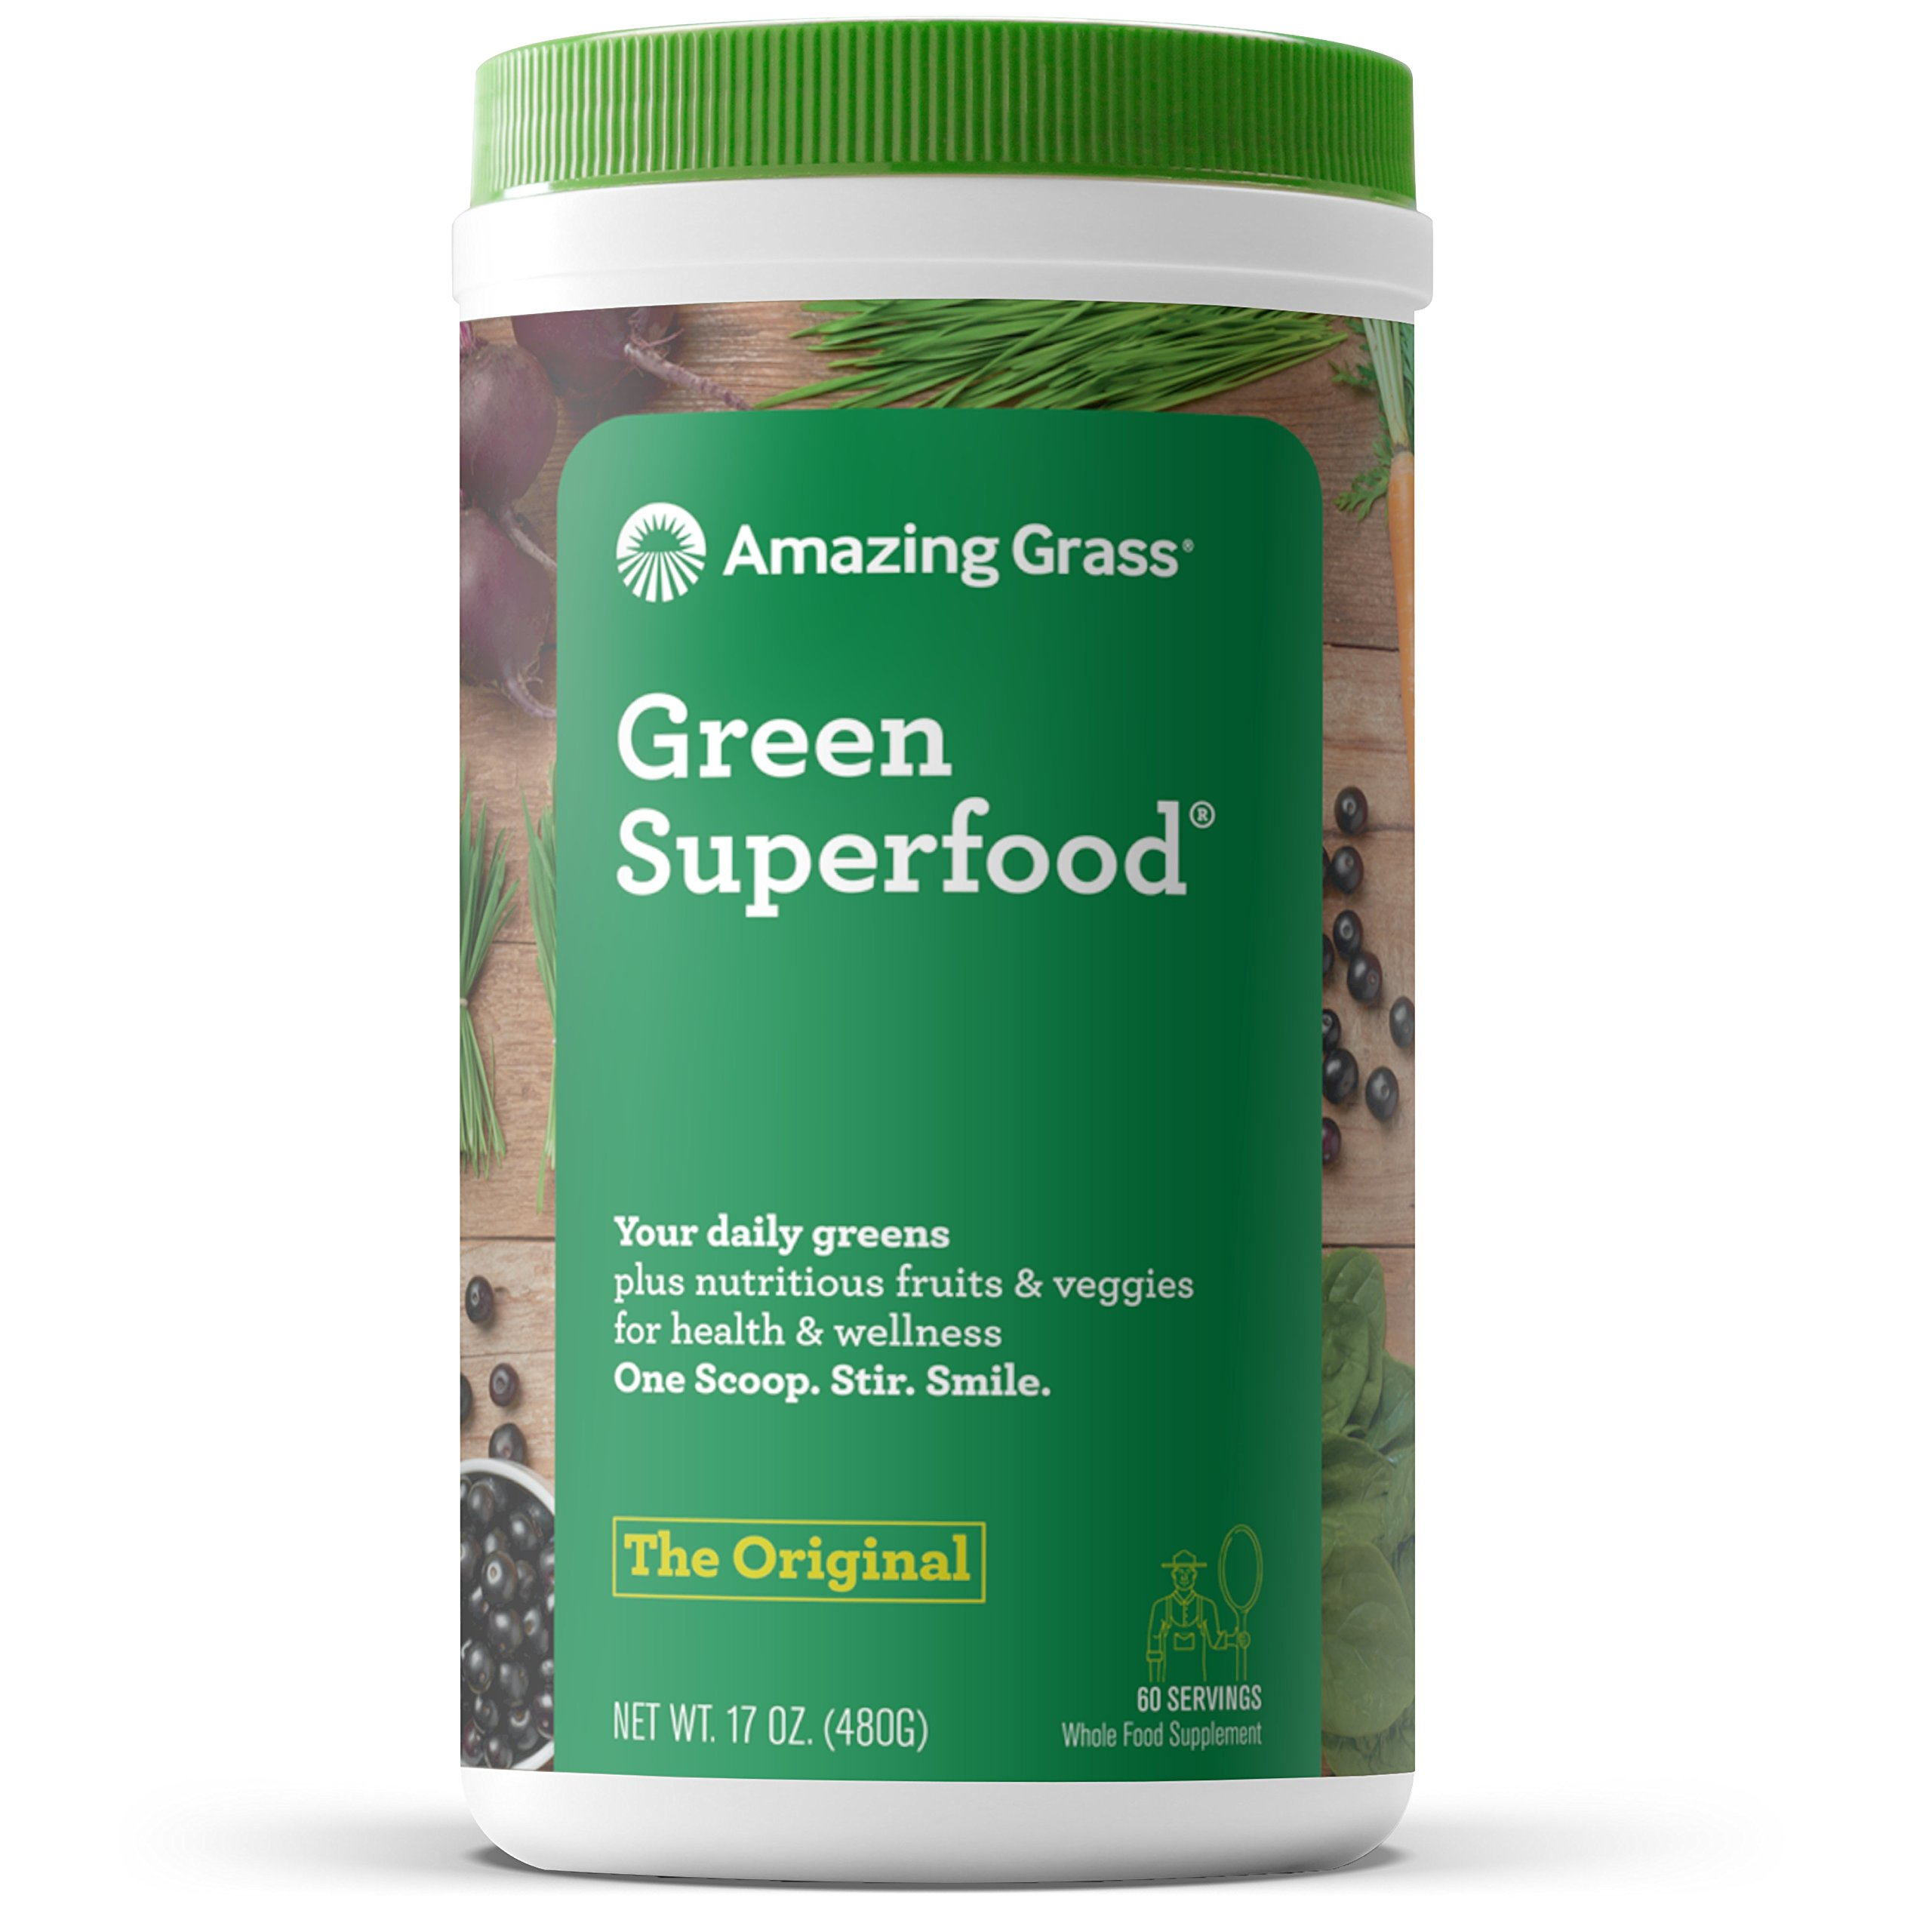 Amazing Grass Green Superfood: Organic Wheat Grass and 7 Super Greens Powder, 2 servings of Fruits & Veggies per scoop, Original Flavor, 60 Servings by Amazing Grass